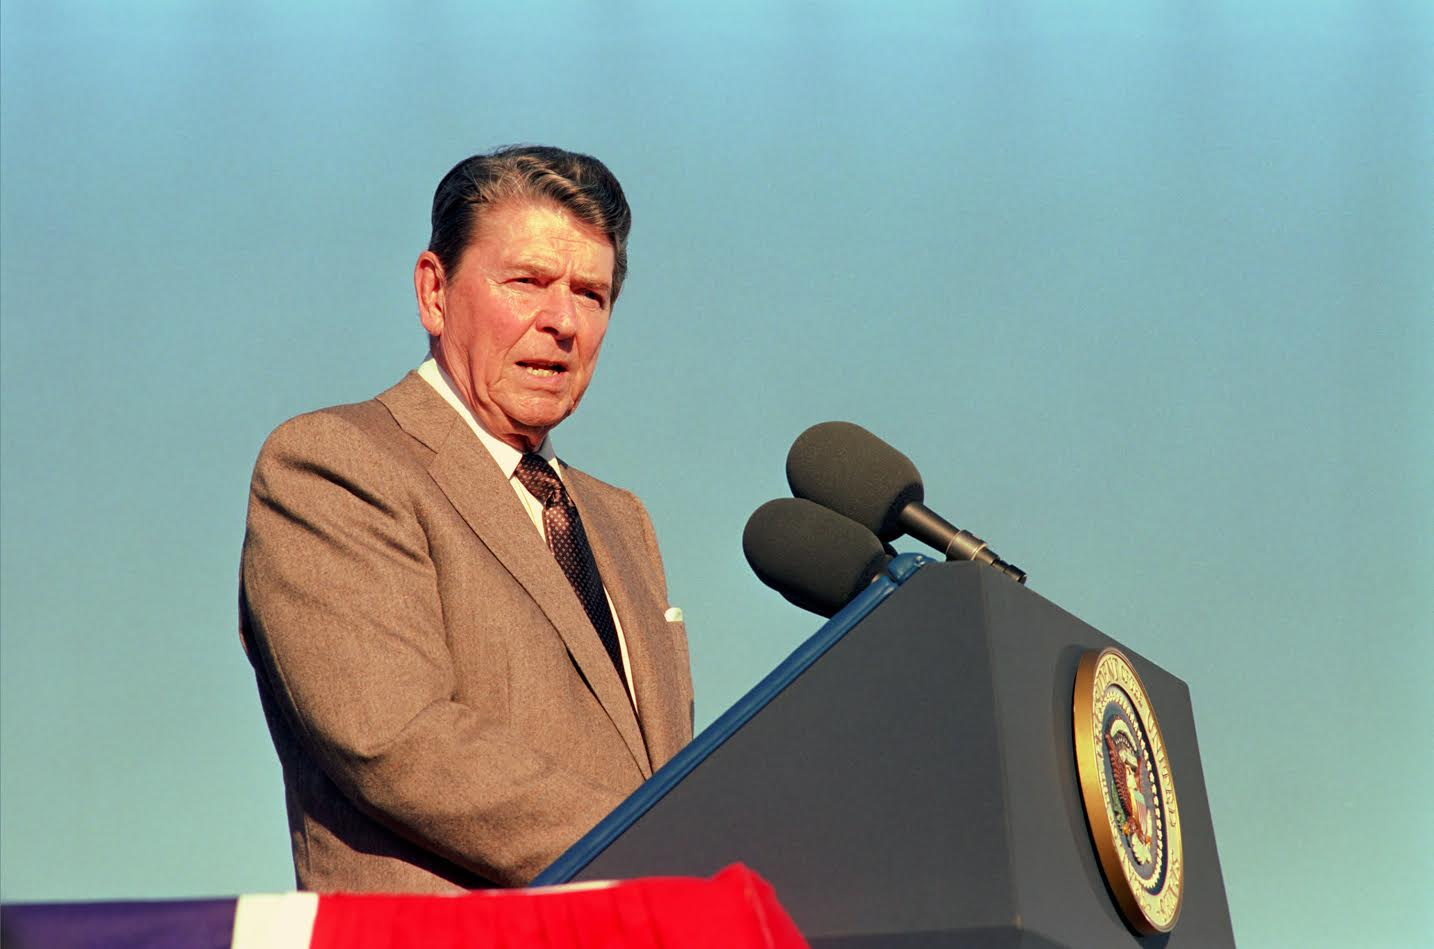 President Reagan Speaking at Podium during his trip to California at the Groundbreaking Ceremony for the Reagan Presidential Library in Simi Valley, November 21, 1988. (Ronald Reagan Presidential Library and Museum, National Archives)